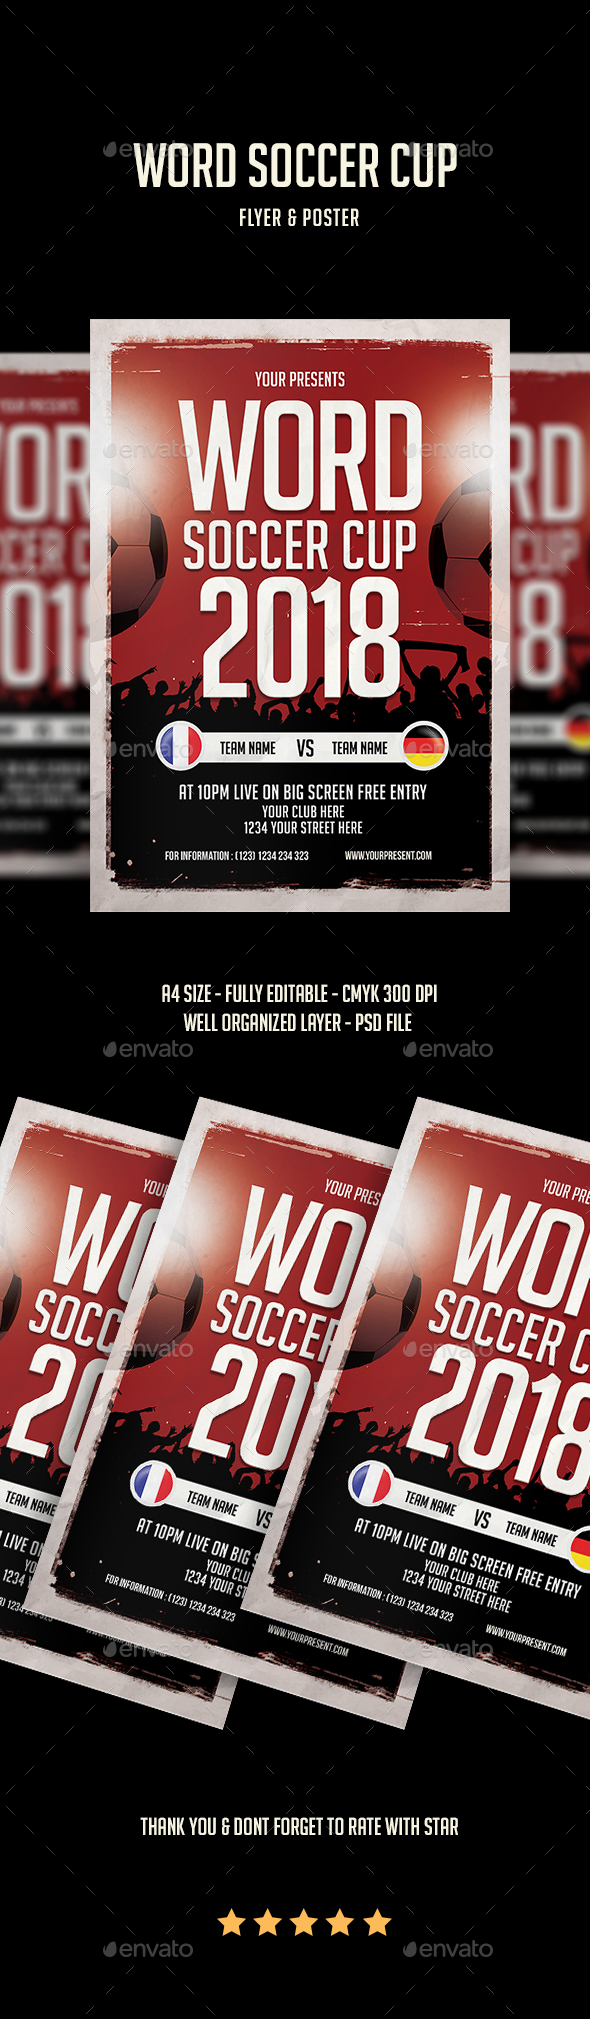 Word Soccer Cup Flyer - Flyers Print Templates